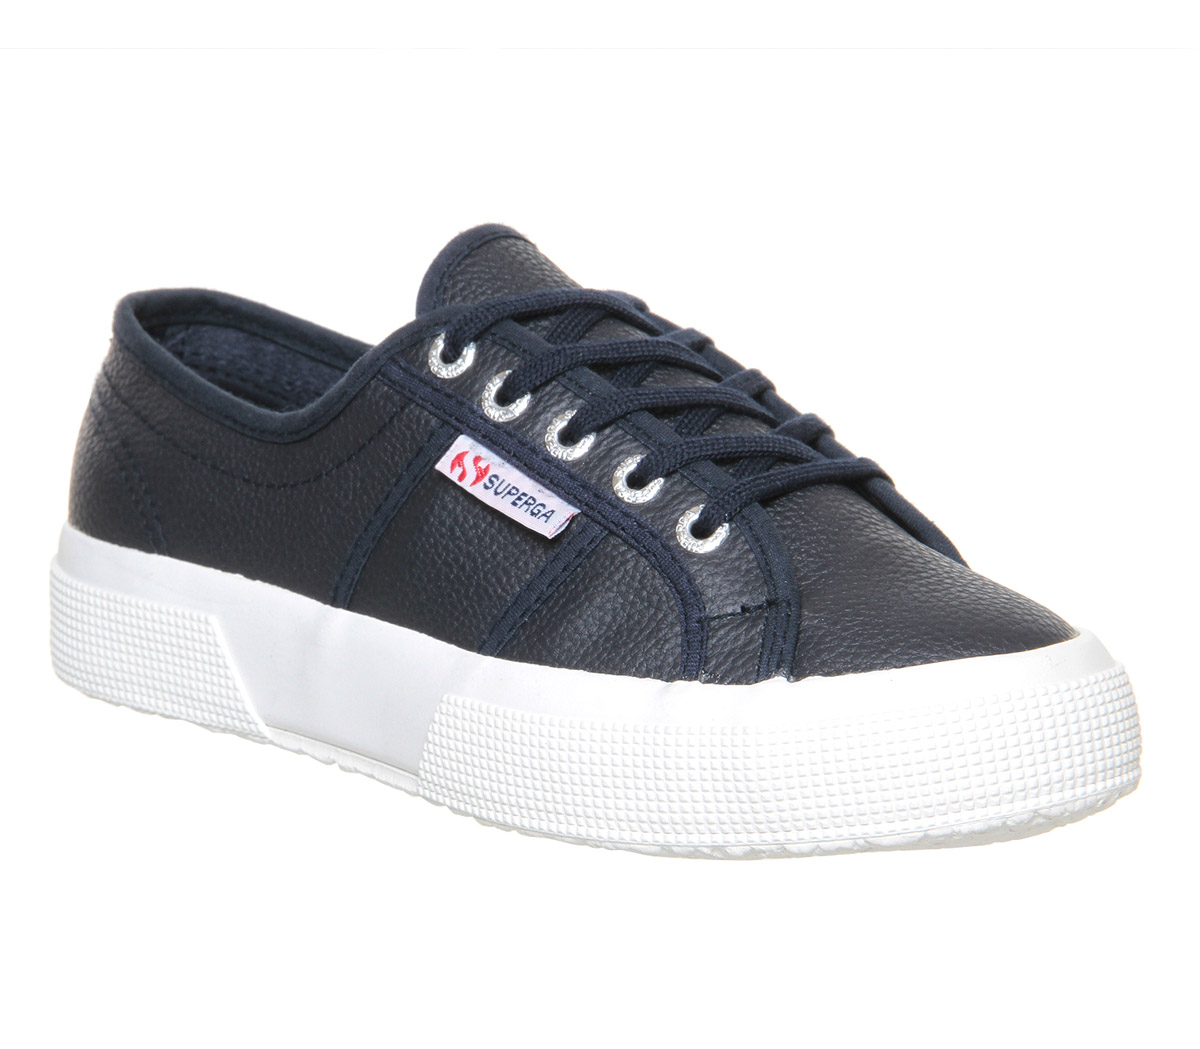 superga 2750 trainers navy leather trainers shoes ebay